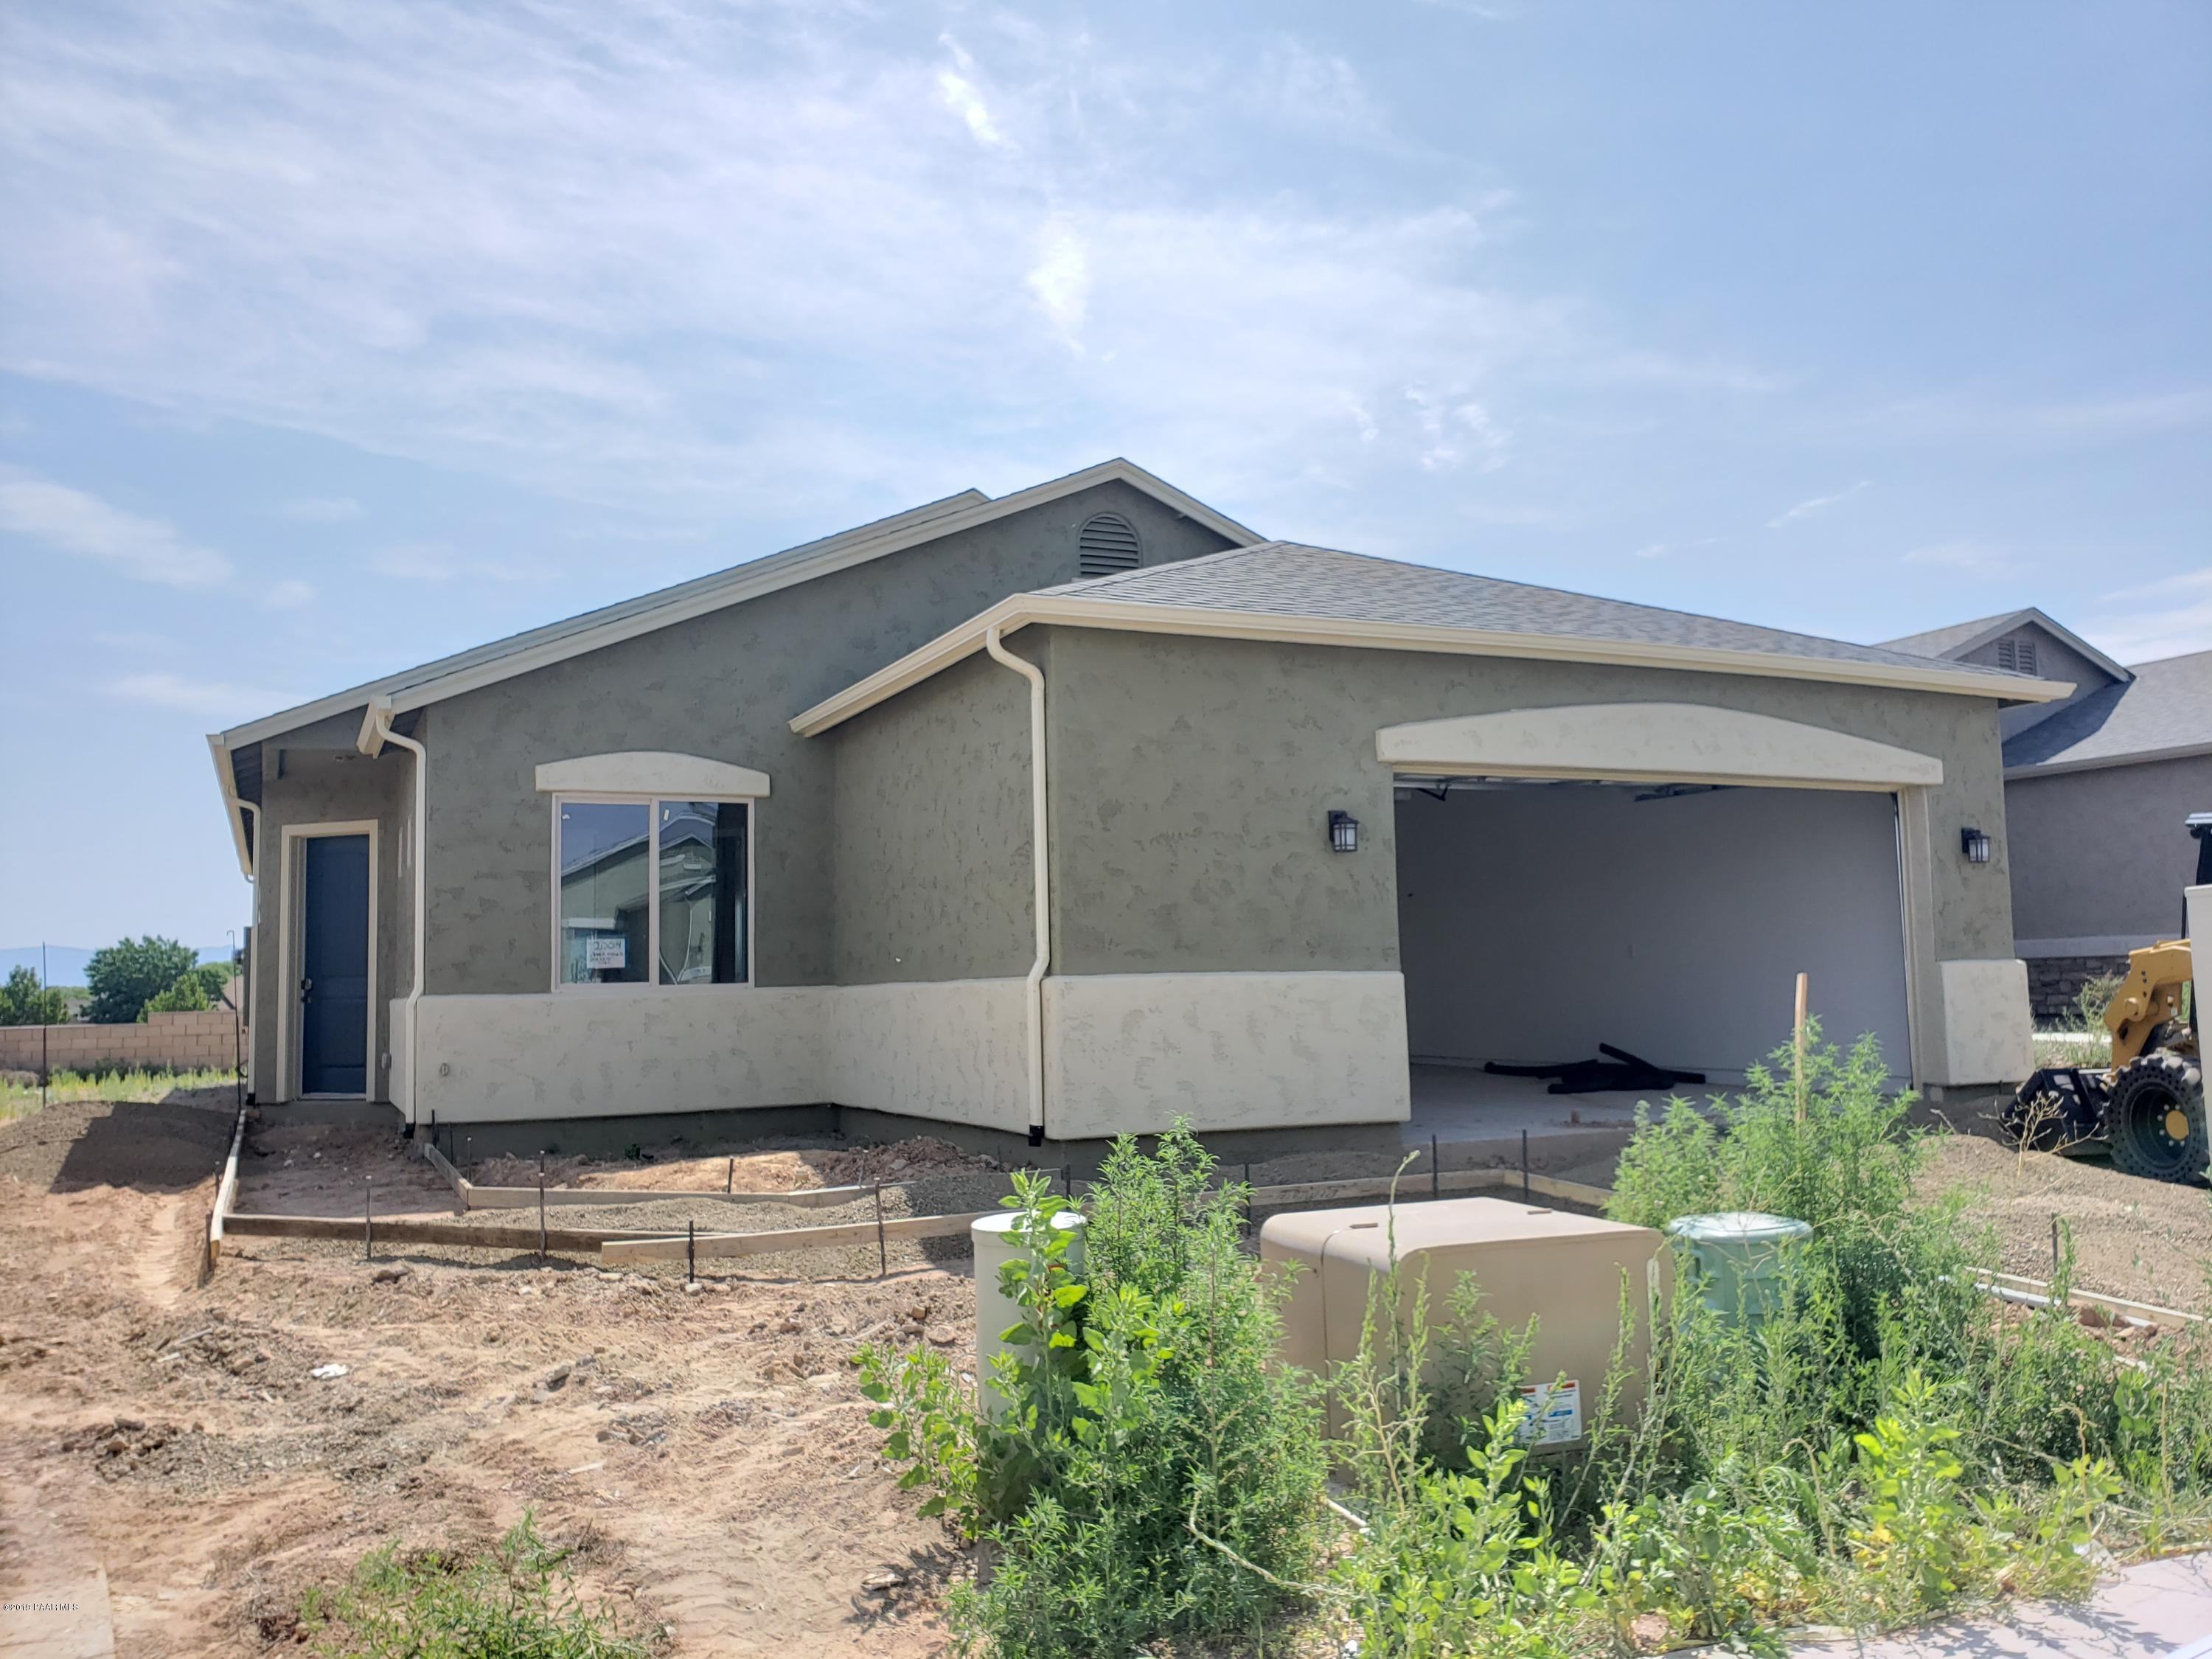 Photo of 5889 Elton, Prescott Valley, AZ 86314